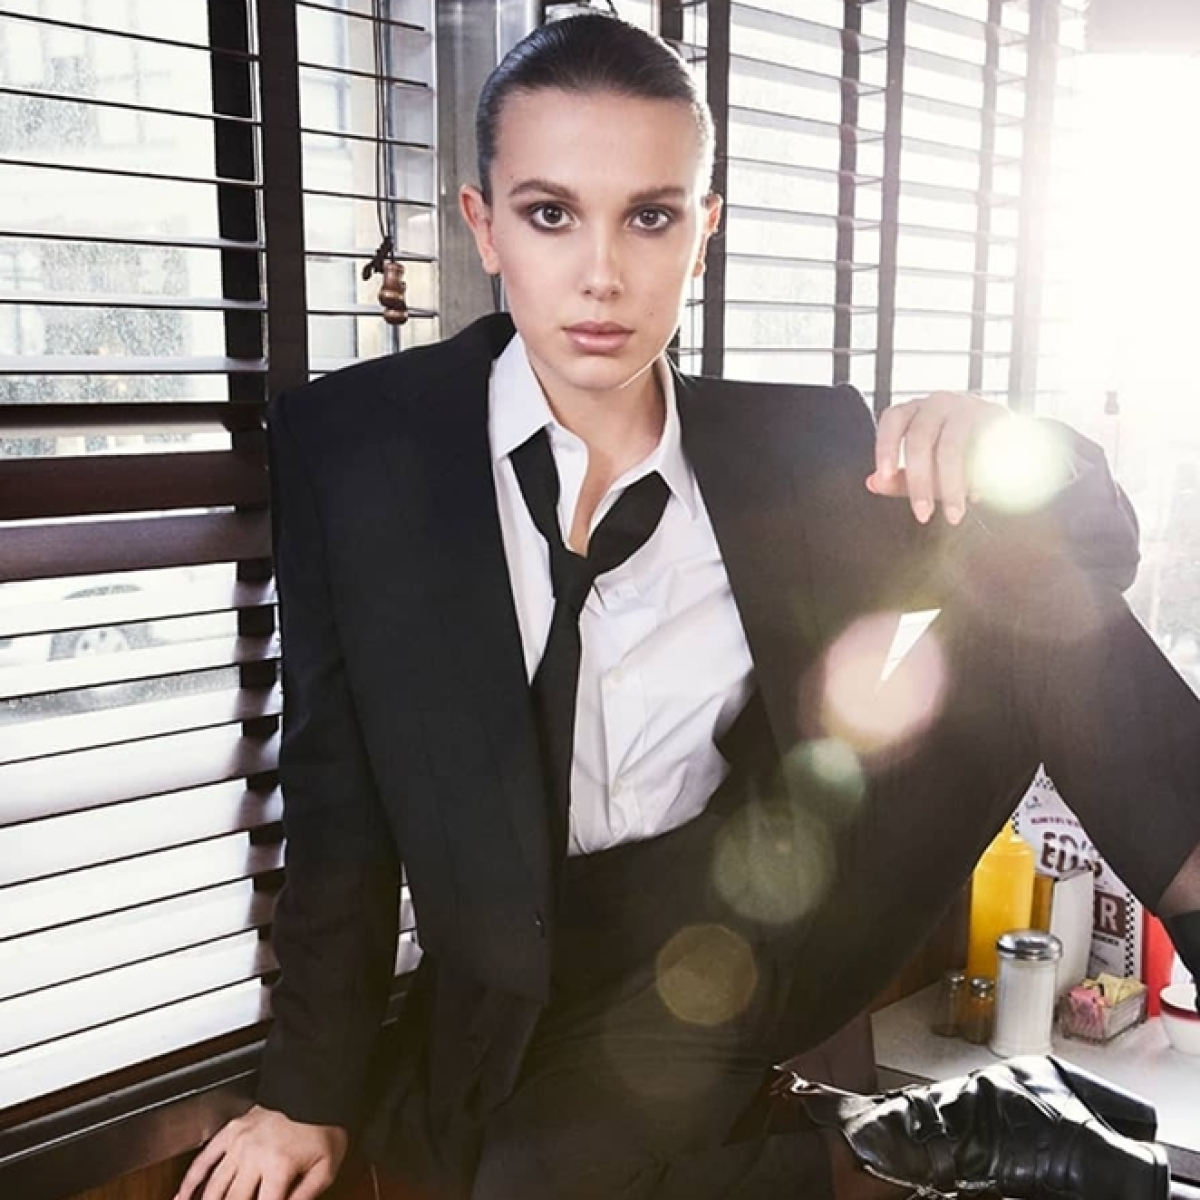 'Stranger Things' star Millie Bobby Brown to produce Netflix's 'A Time Lost'